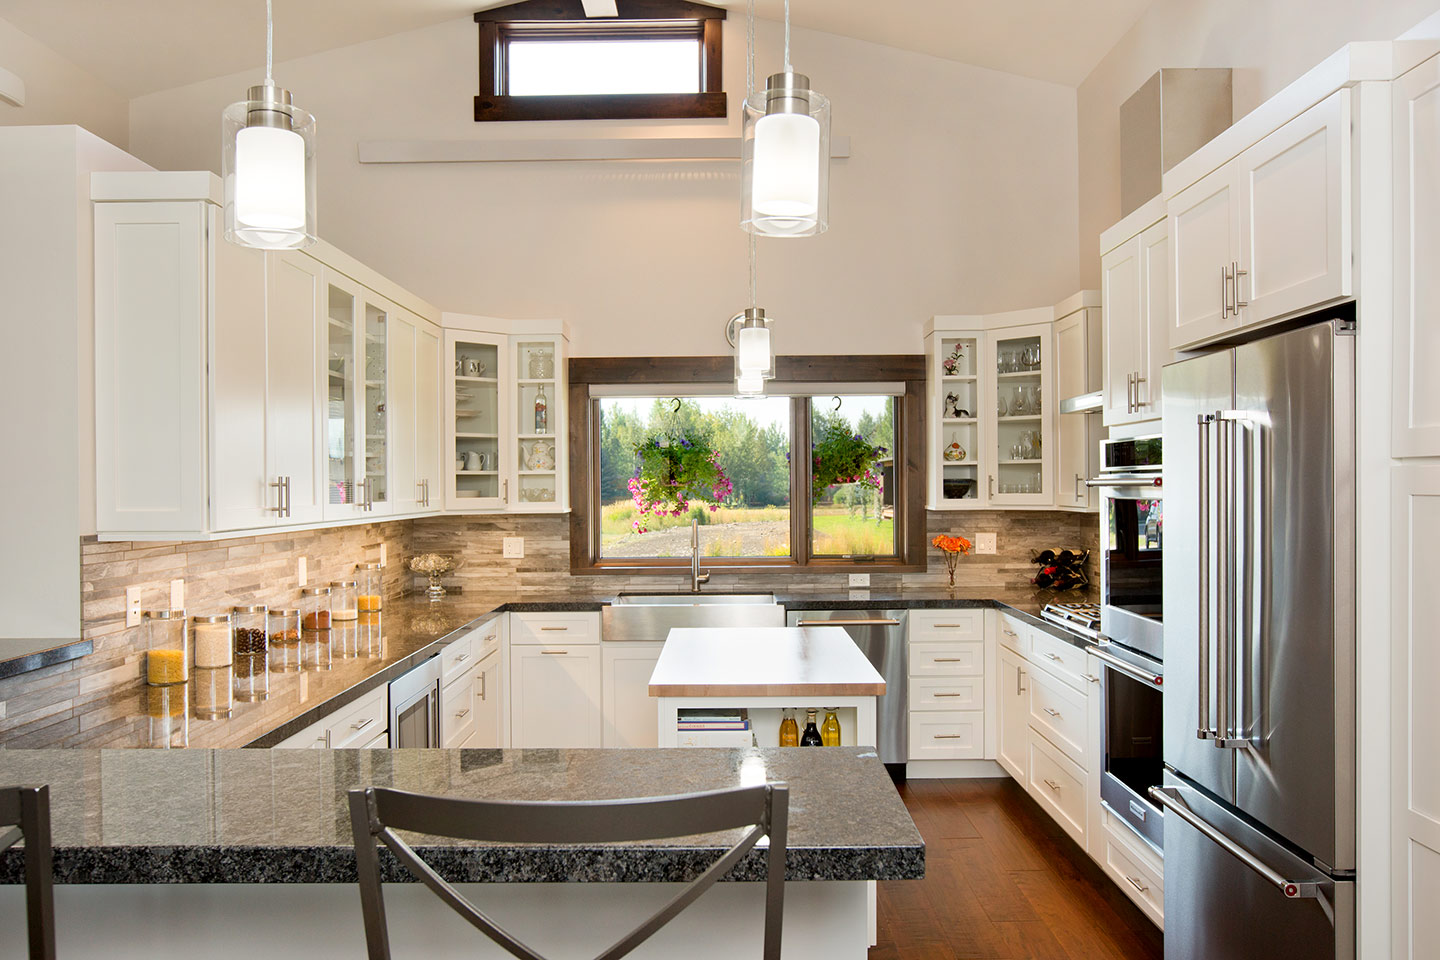 Kitchen with white cabinetry, granite counter top, and stainless steel appliances